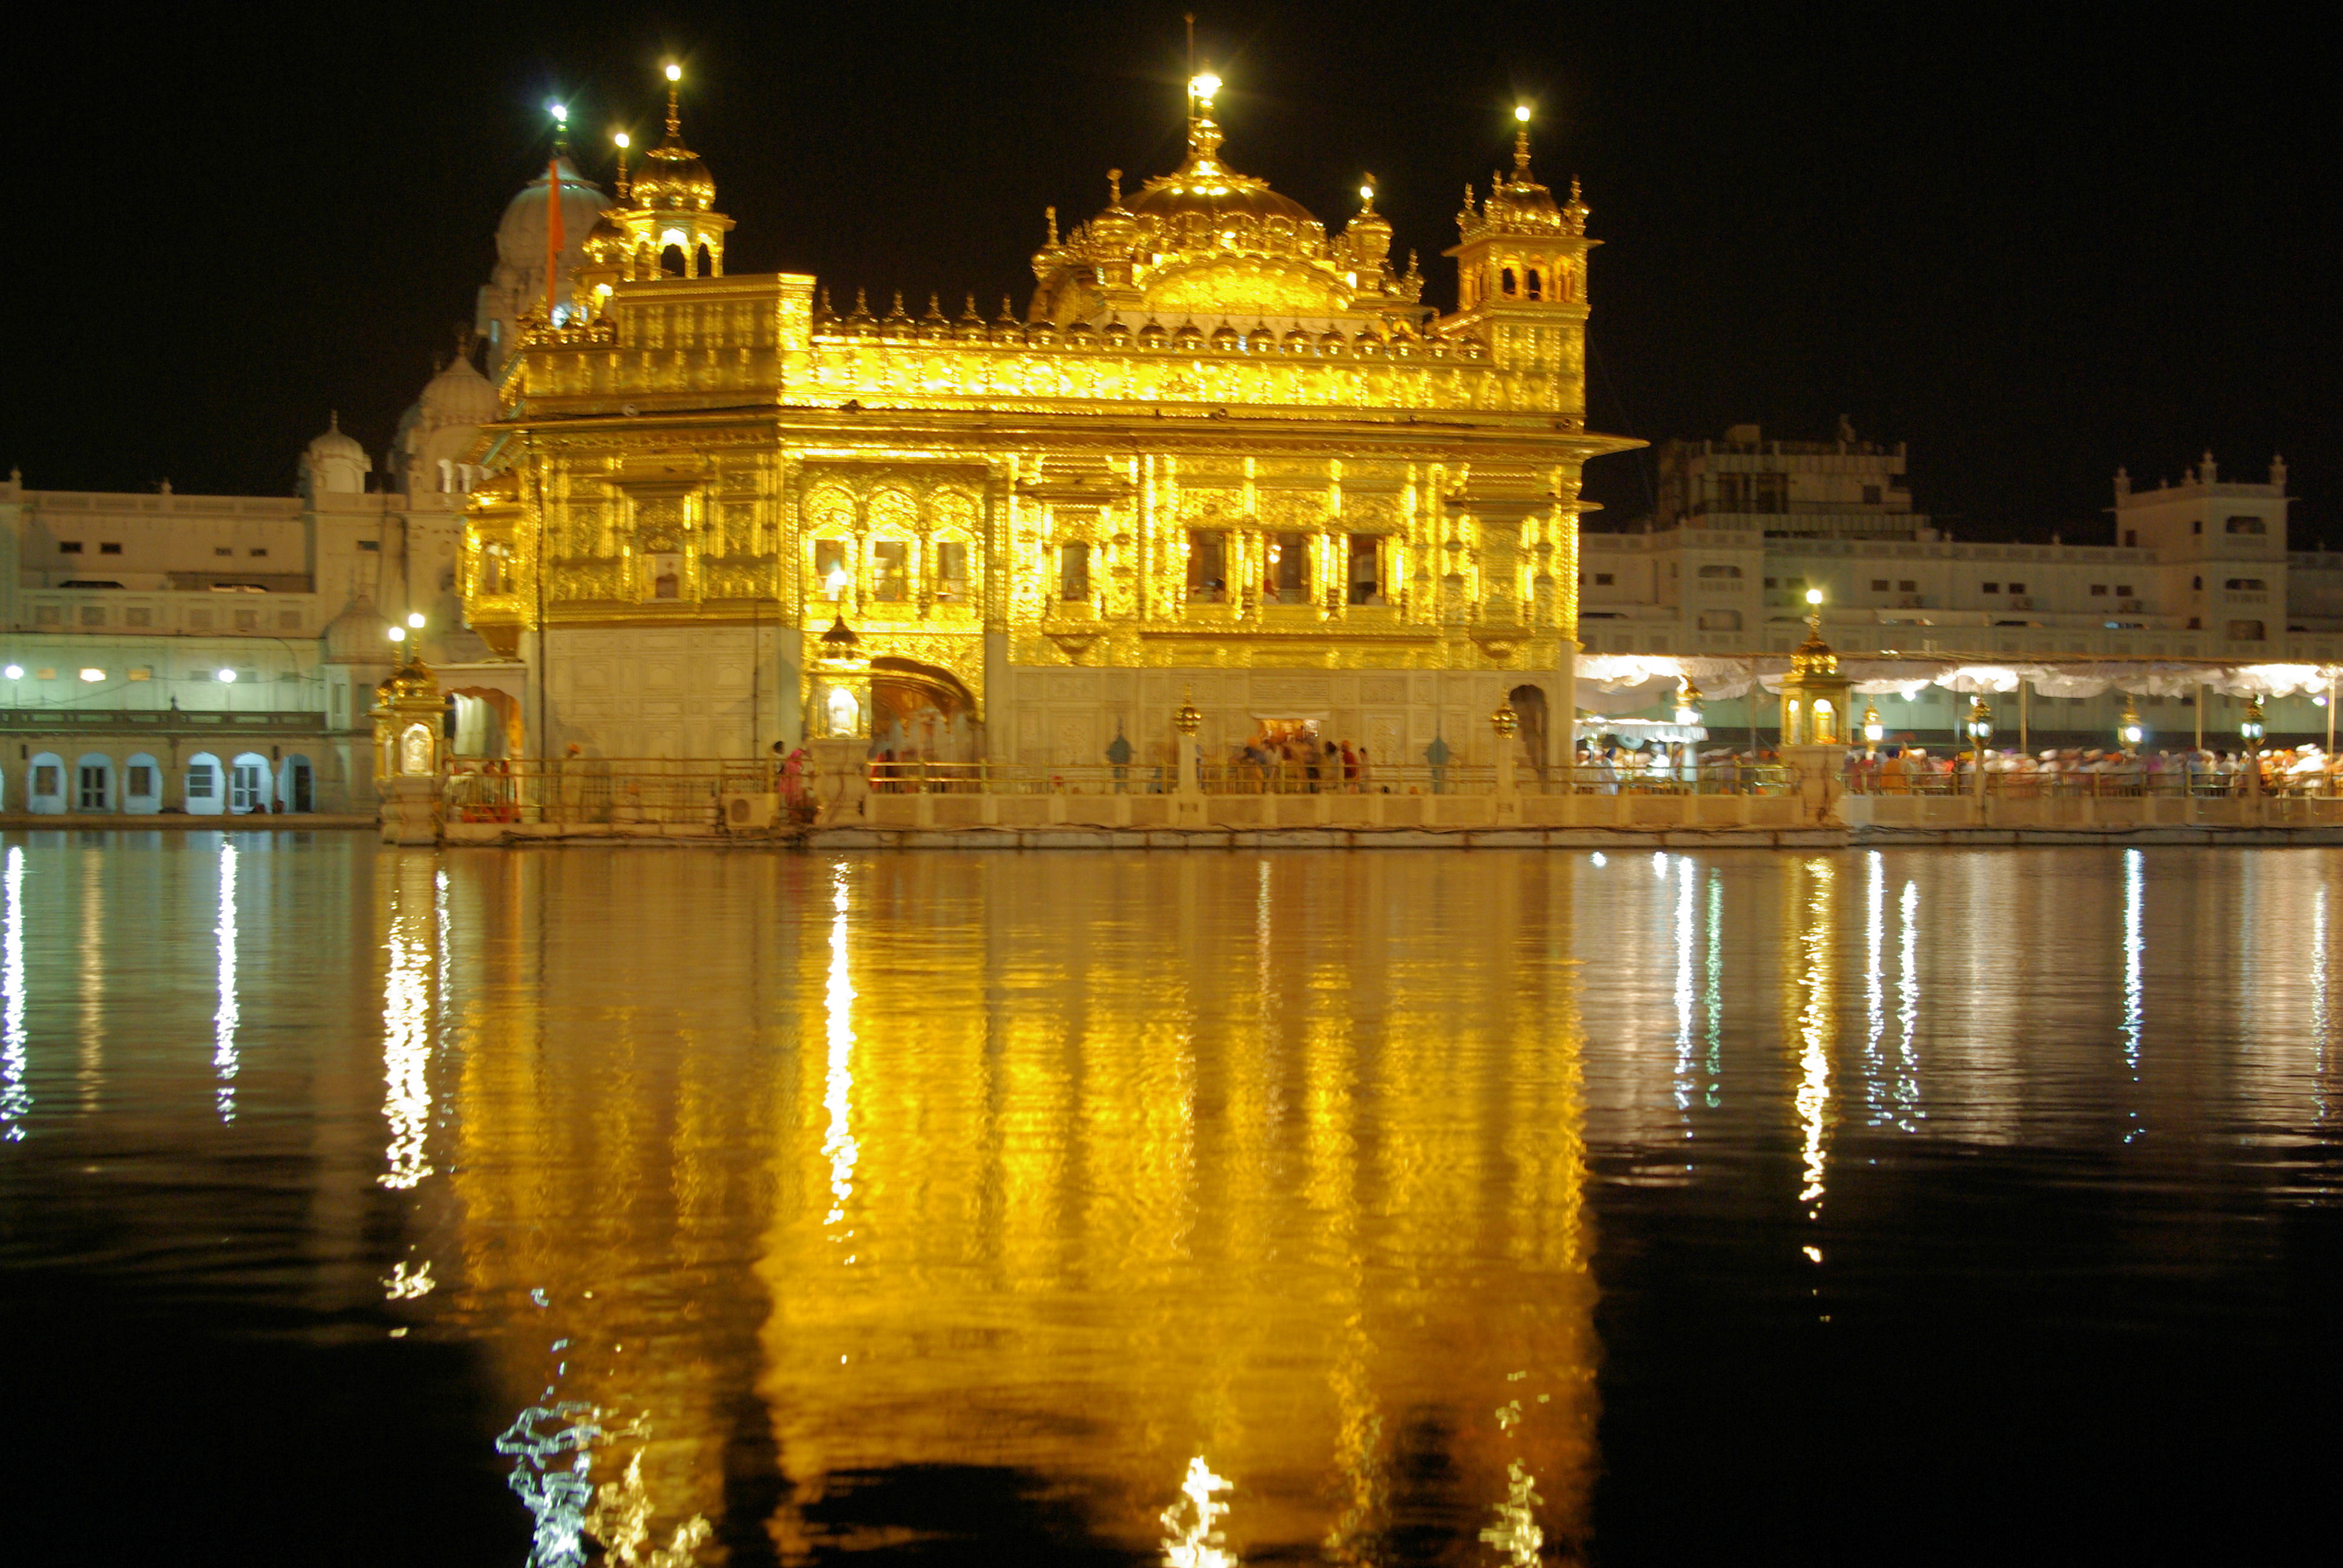 golden temple - amritsar photos, images and wallpapers - mouthshut